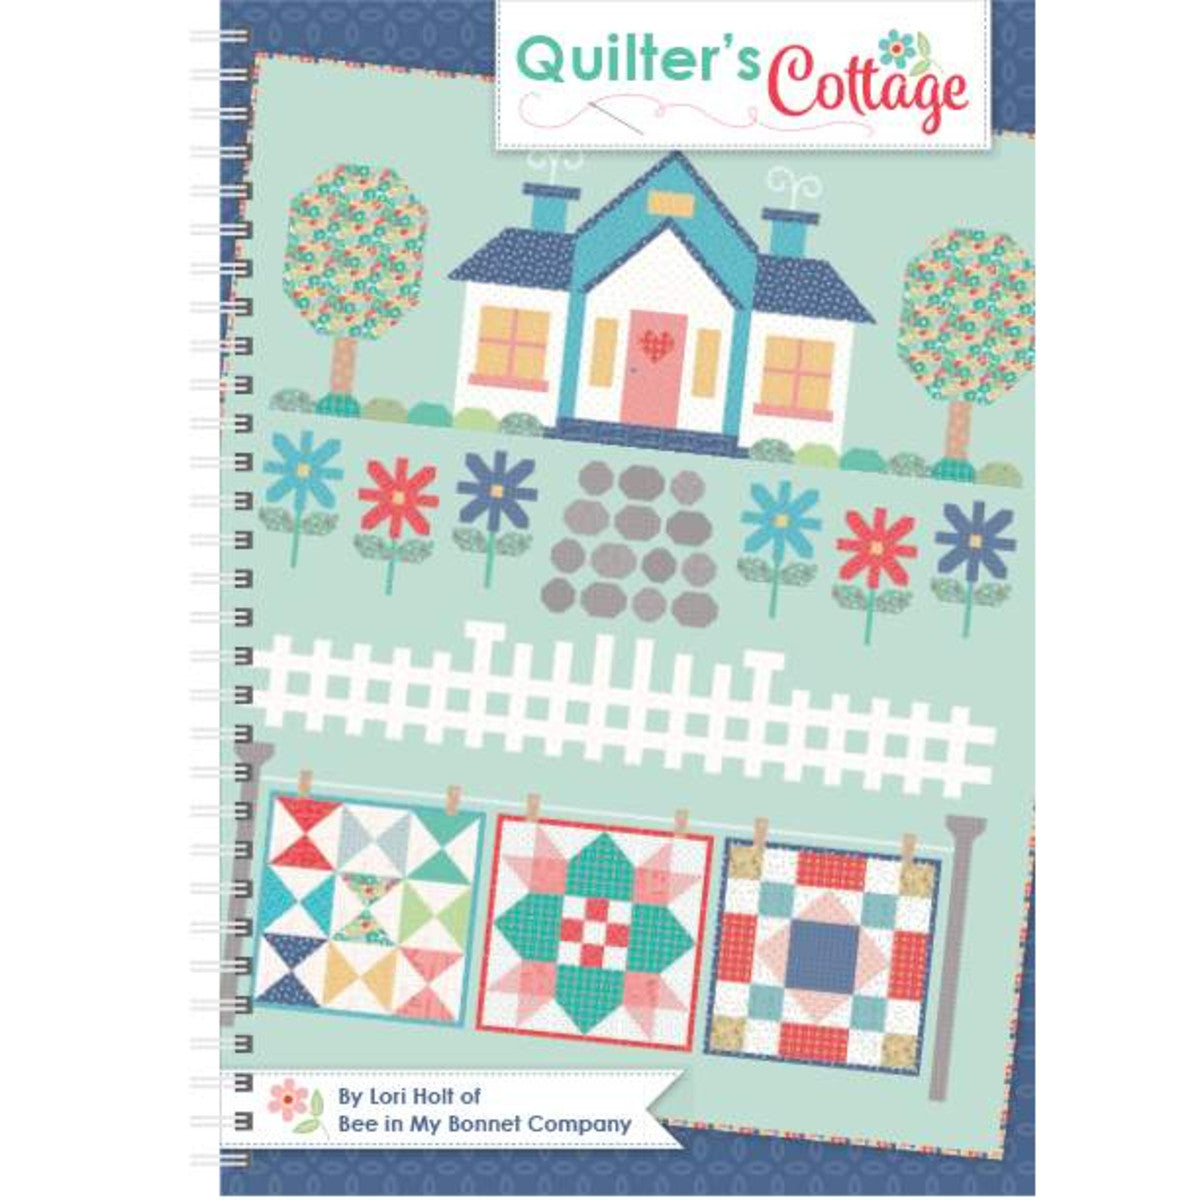 It's Sew Emma Quilter's Cottage Book